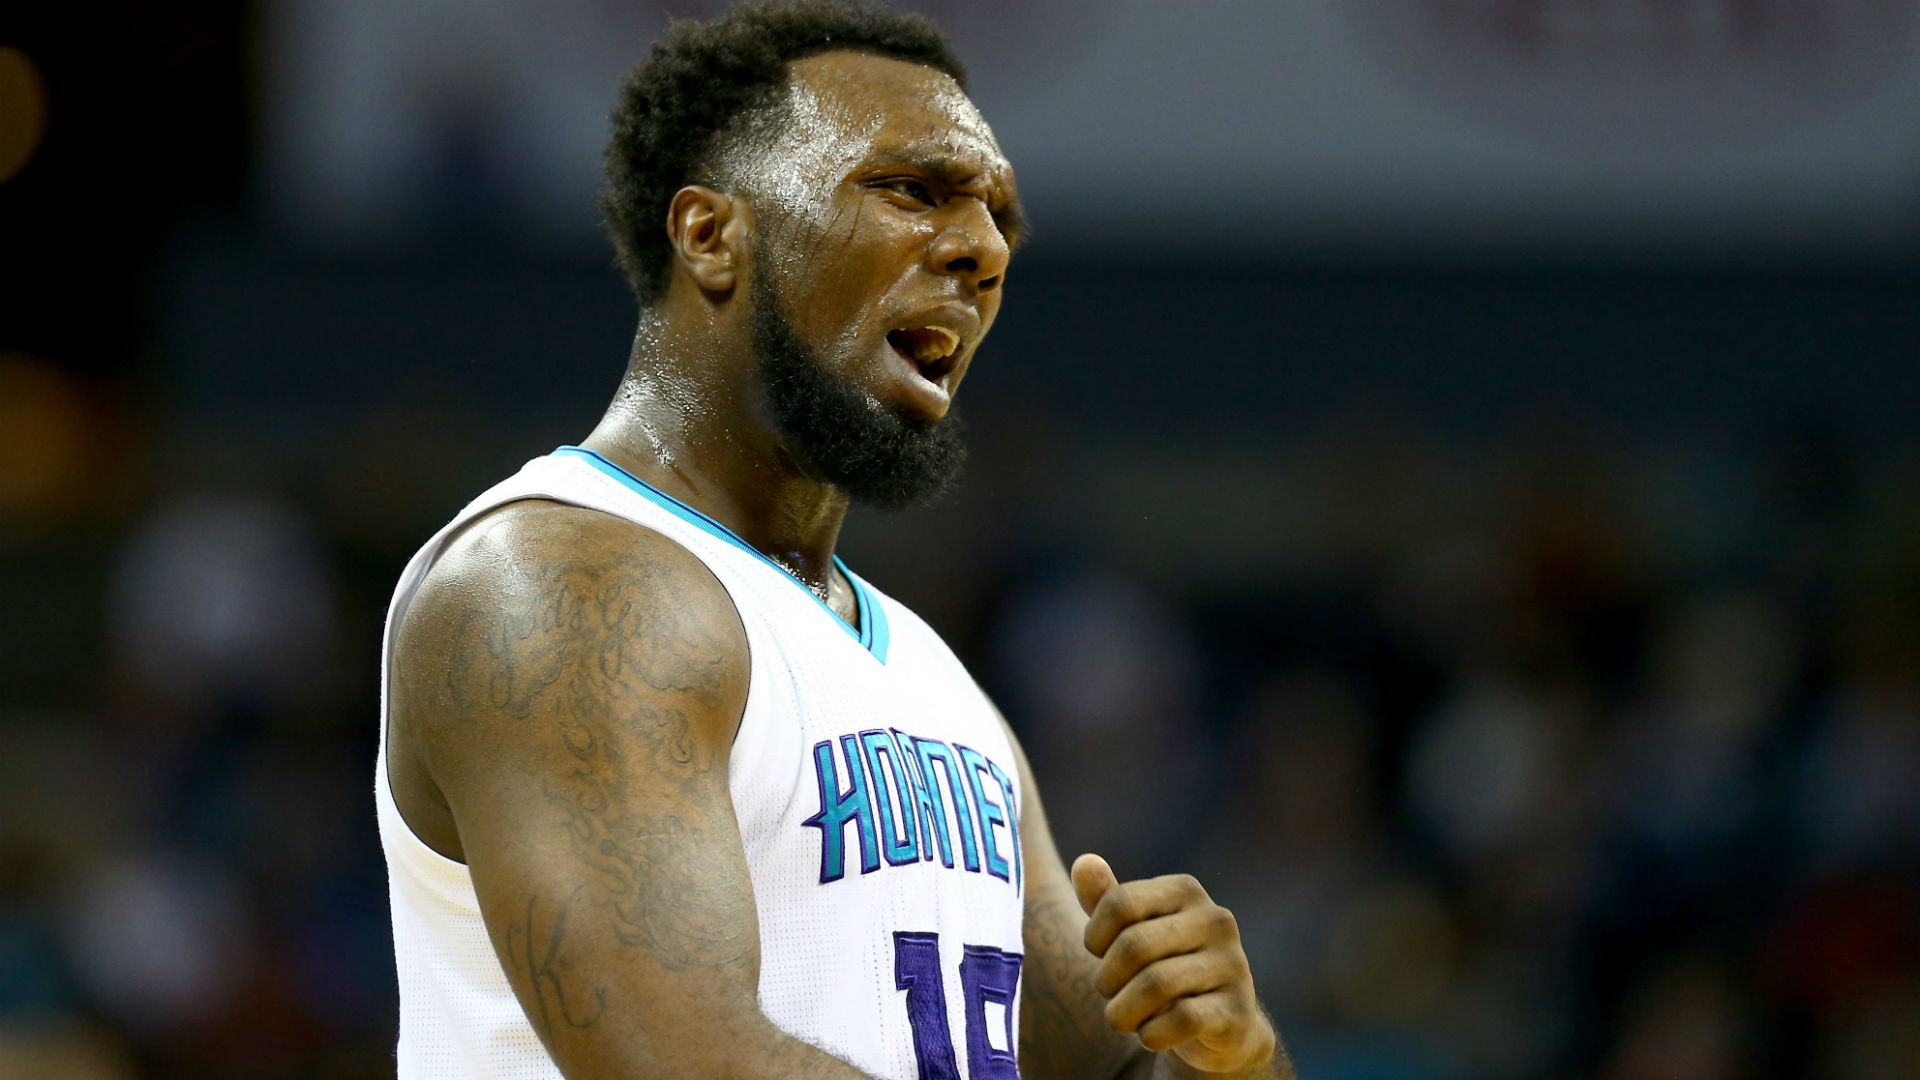 Former North Carolina star, NBA player P.J. Hairston wanted on domestic violence charges